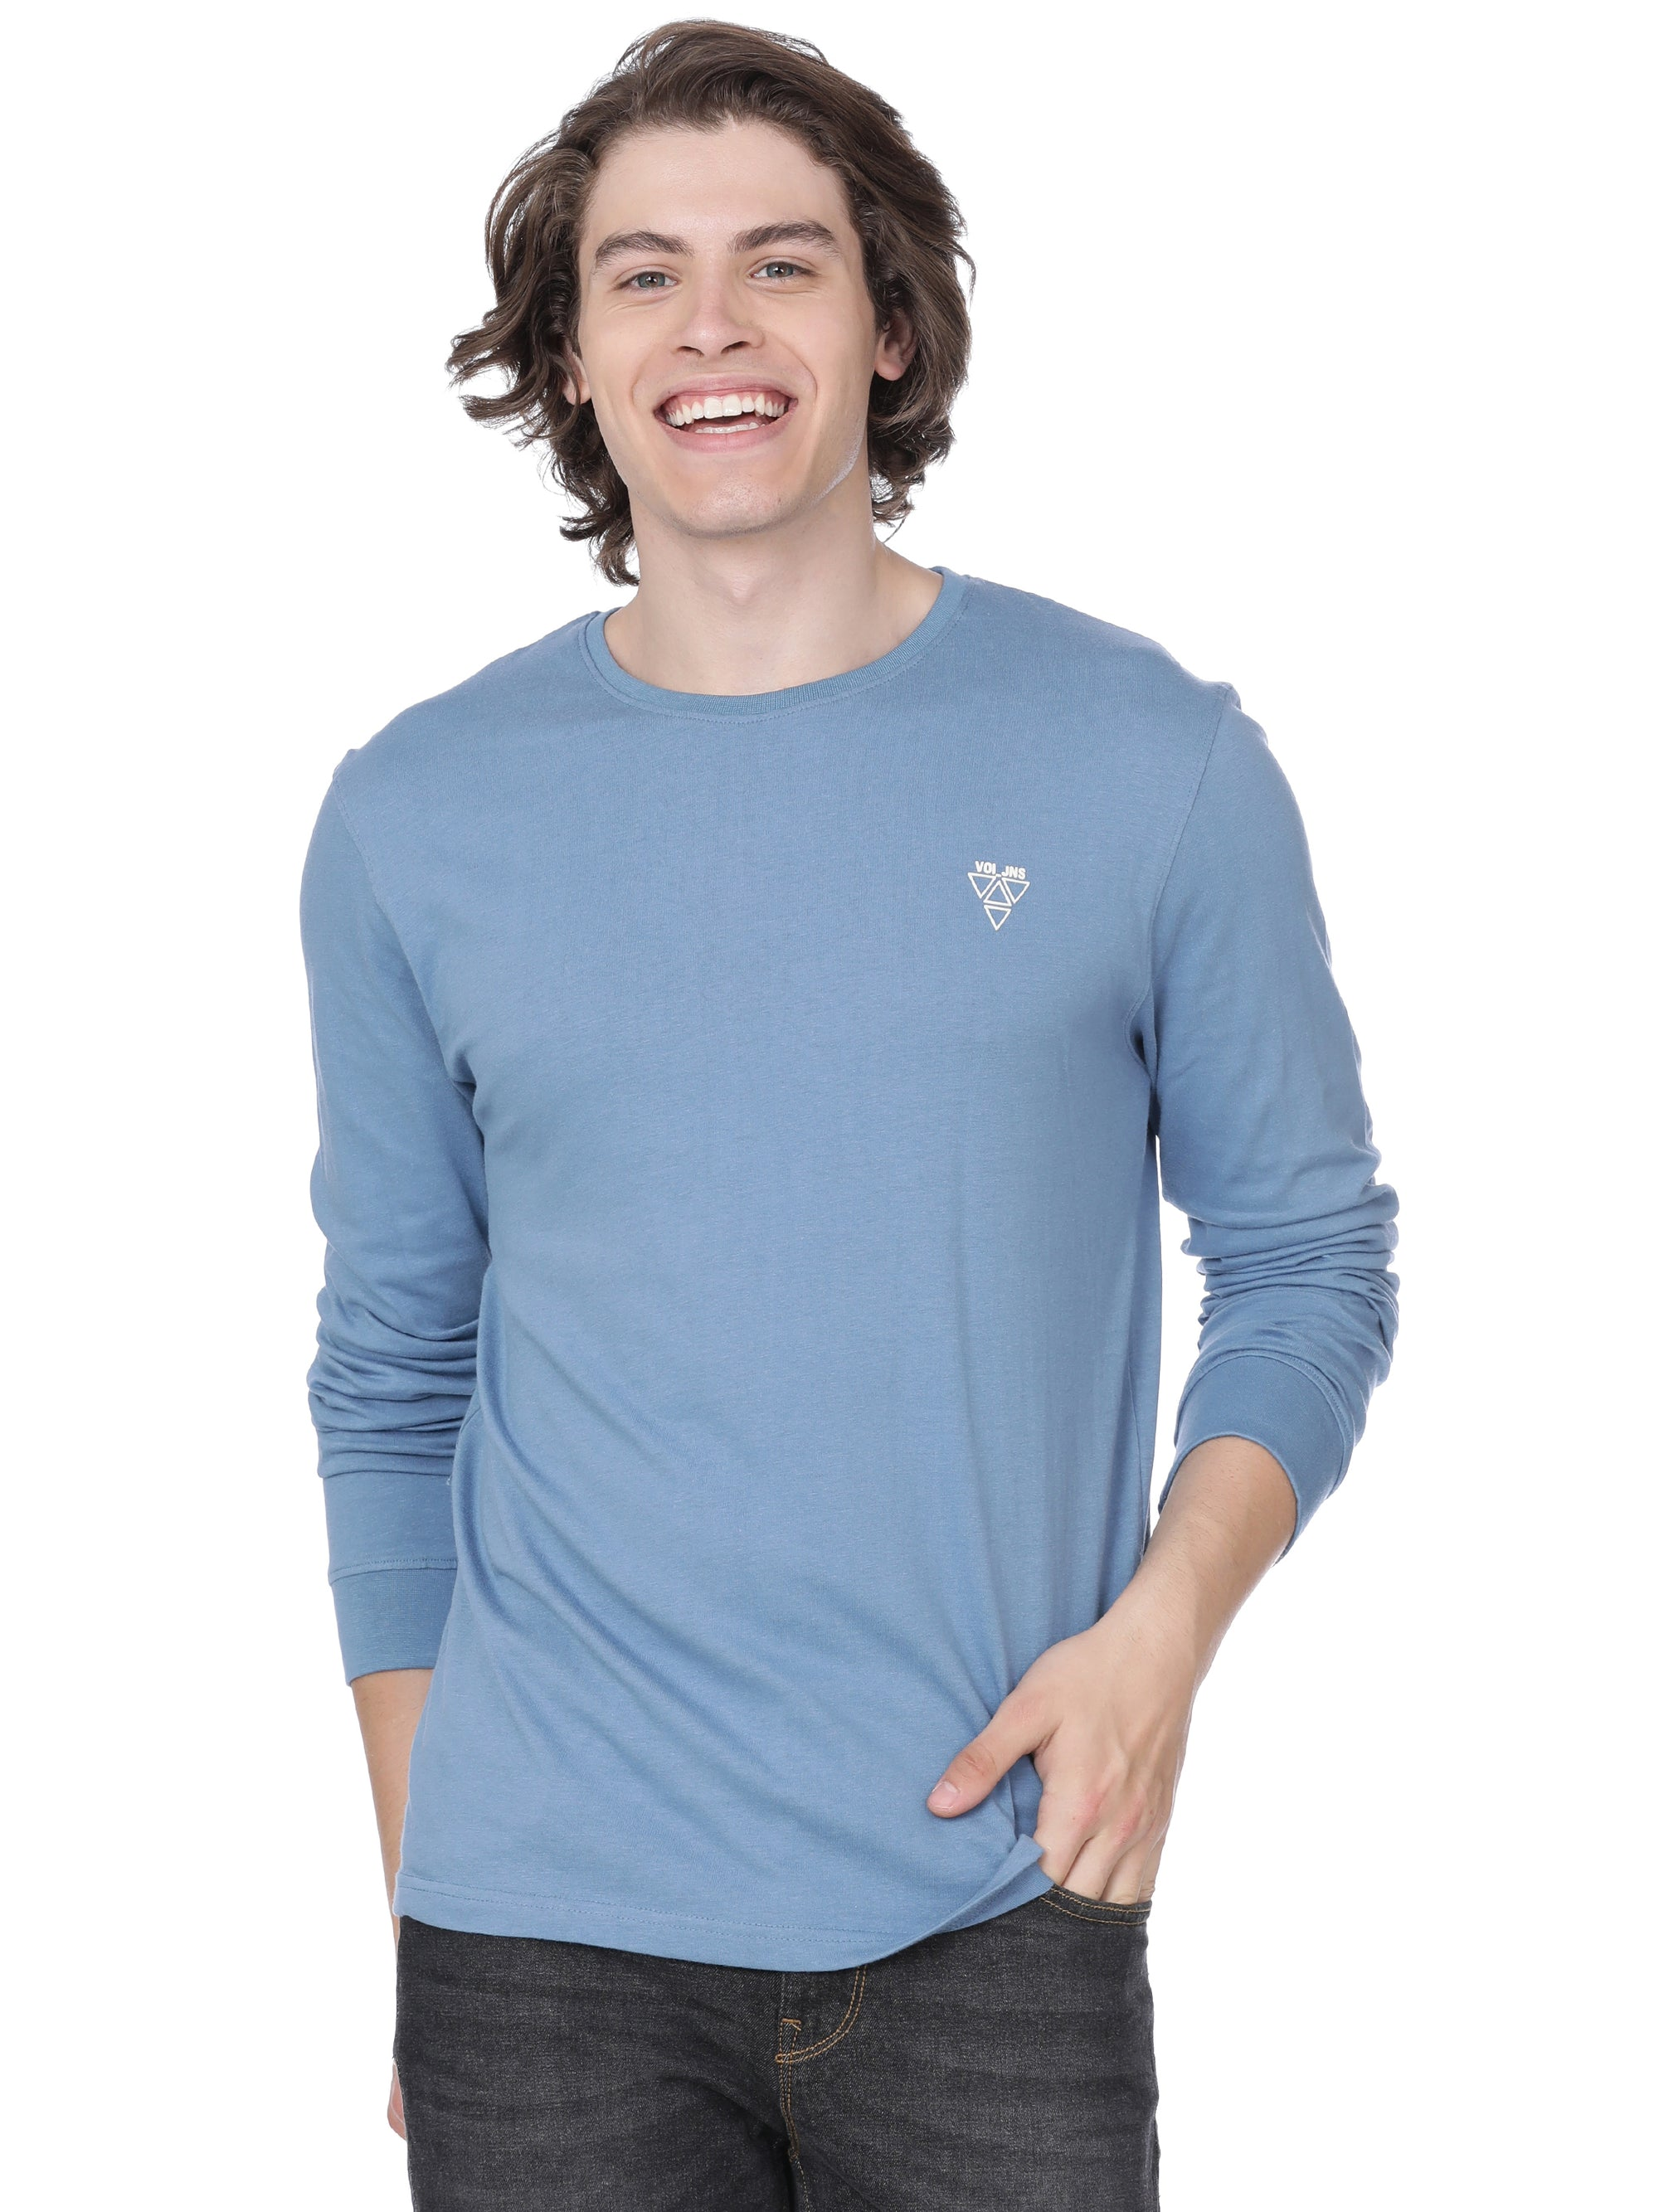 Light blue t-shirt full sleeves - Voi Jeans Pant Online